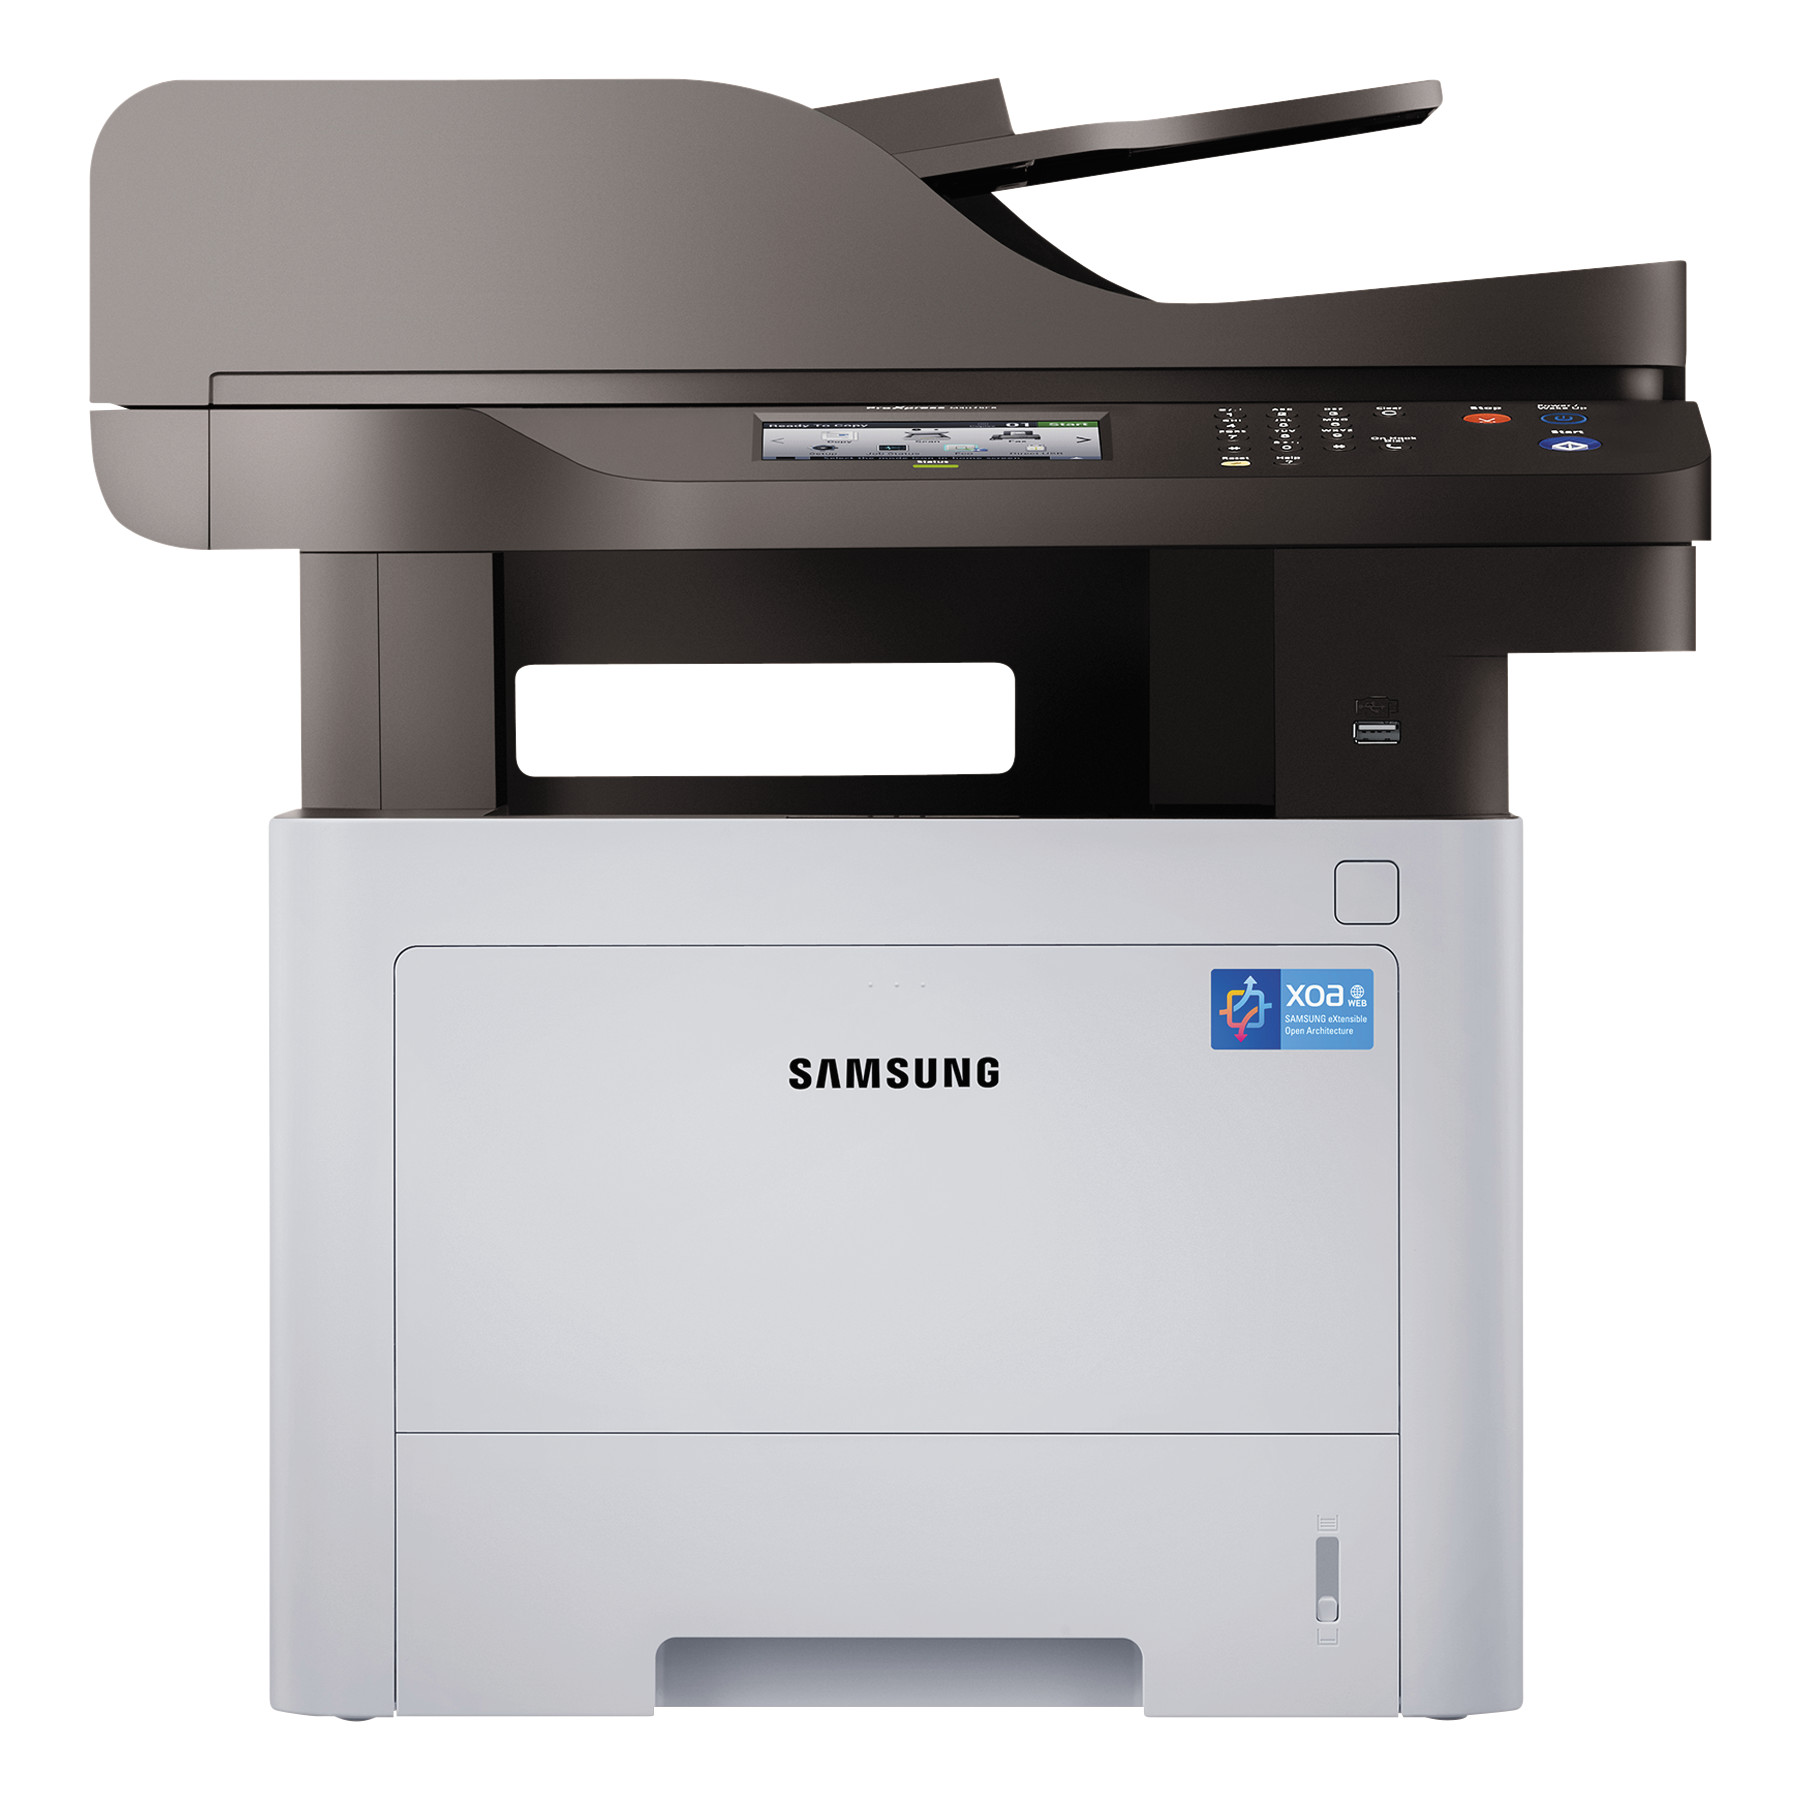 Samsung ProXpress M4070FX Multifunction Laser Printer, Copy Fax Print Scan by Samsung